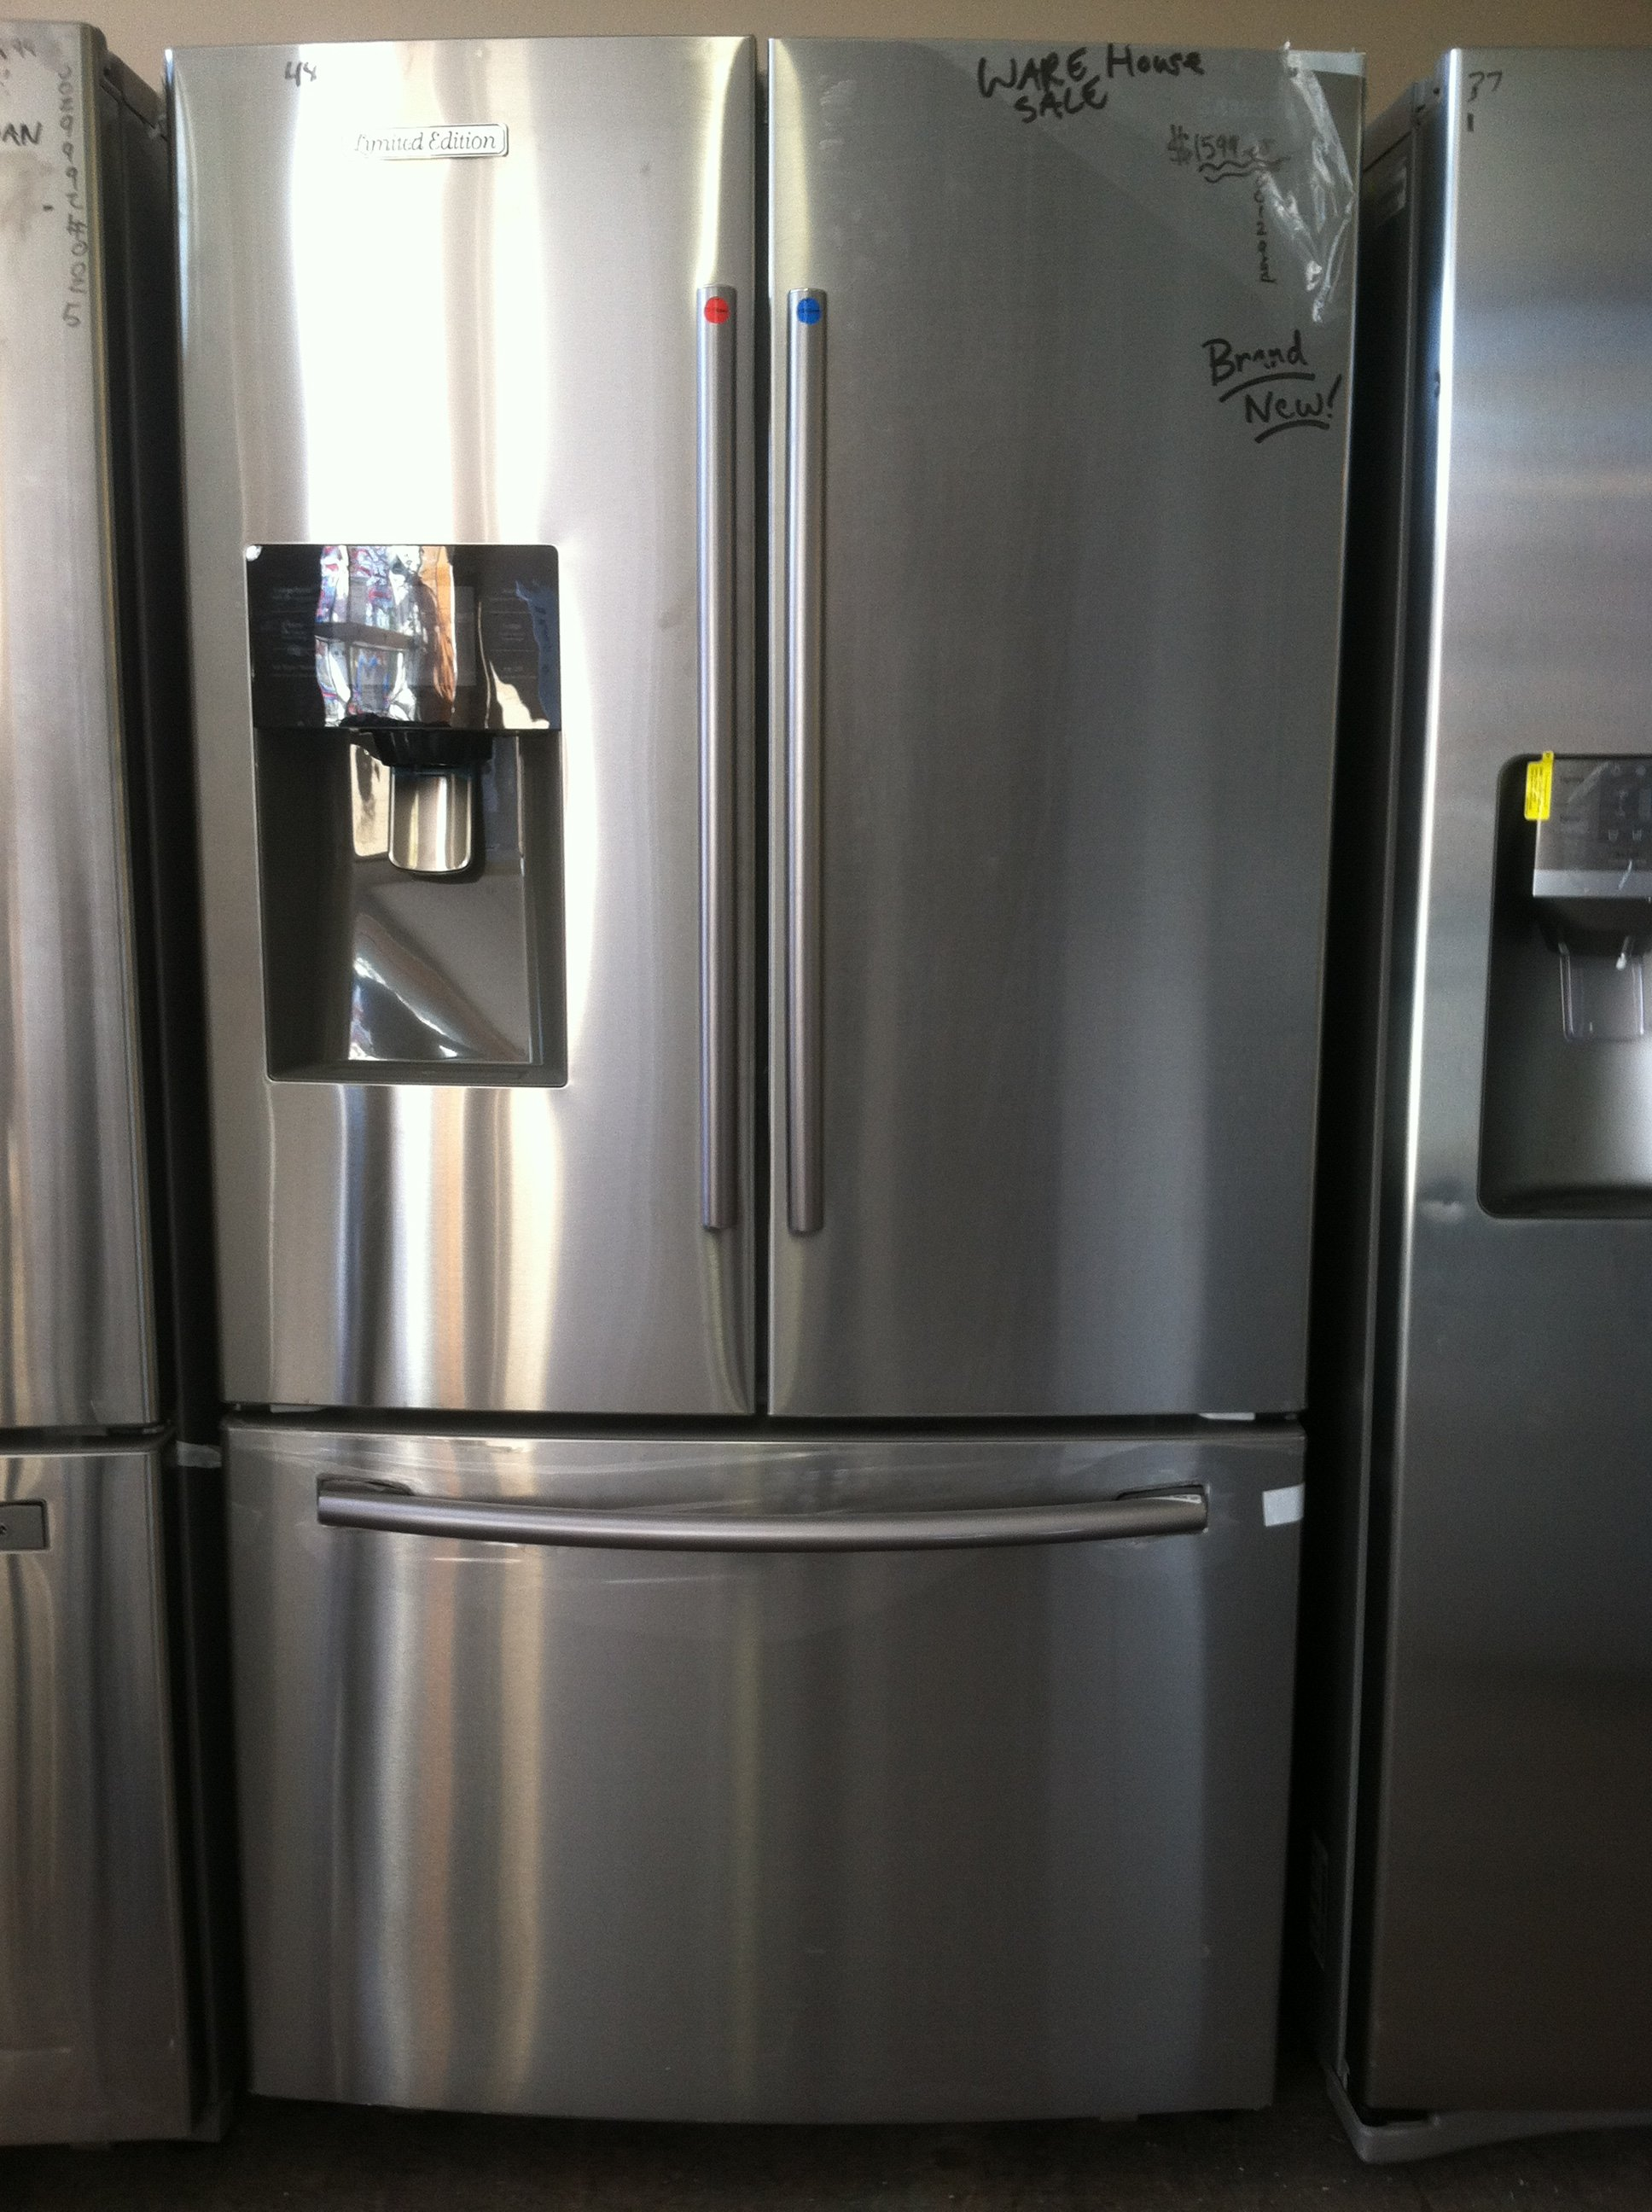 Discount Samsung Refrigerator St Louis Appliance Outlet